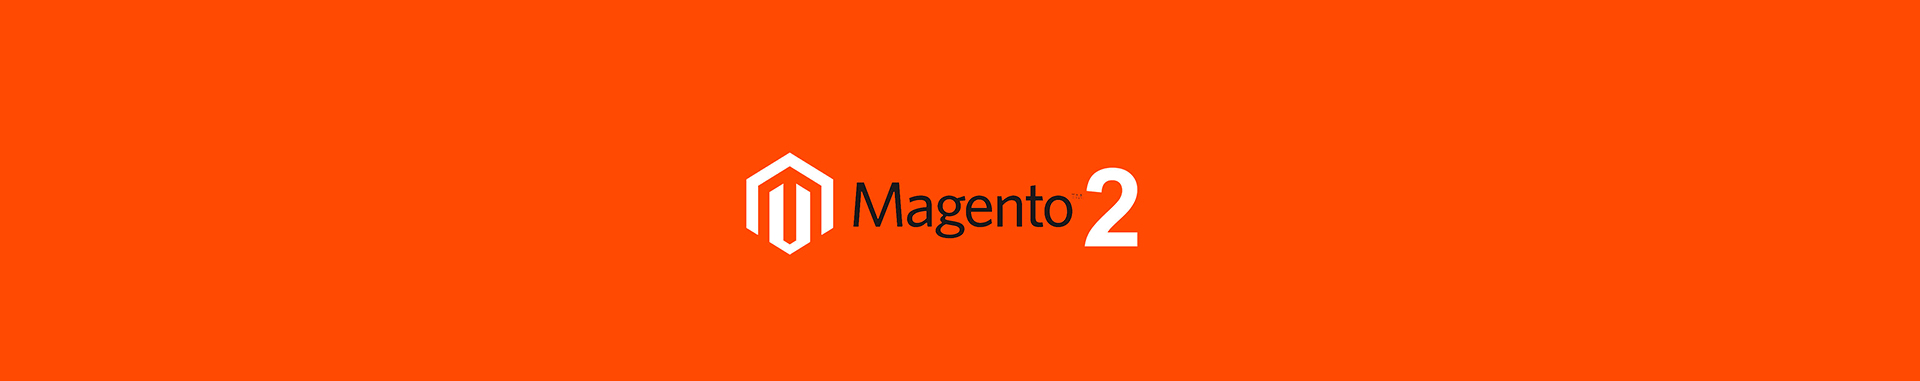 Your web server is set up incorrectly and allows unauthorized access to sensitive files. Please contact your hosting provider Magento 2